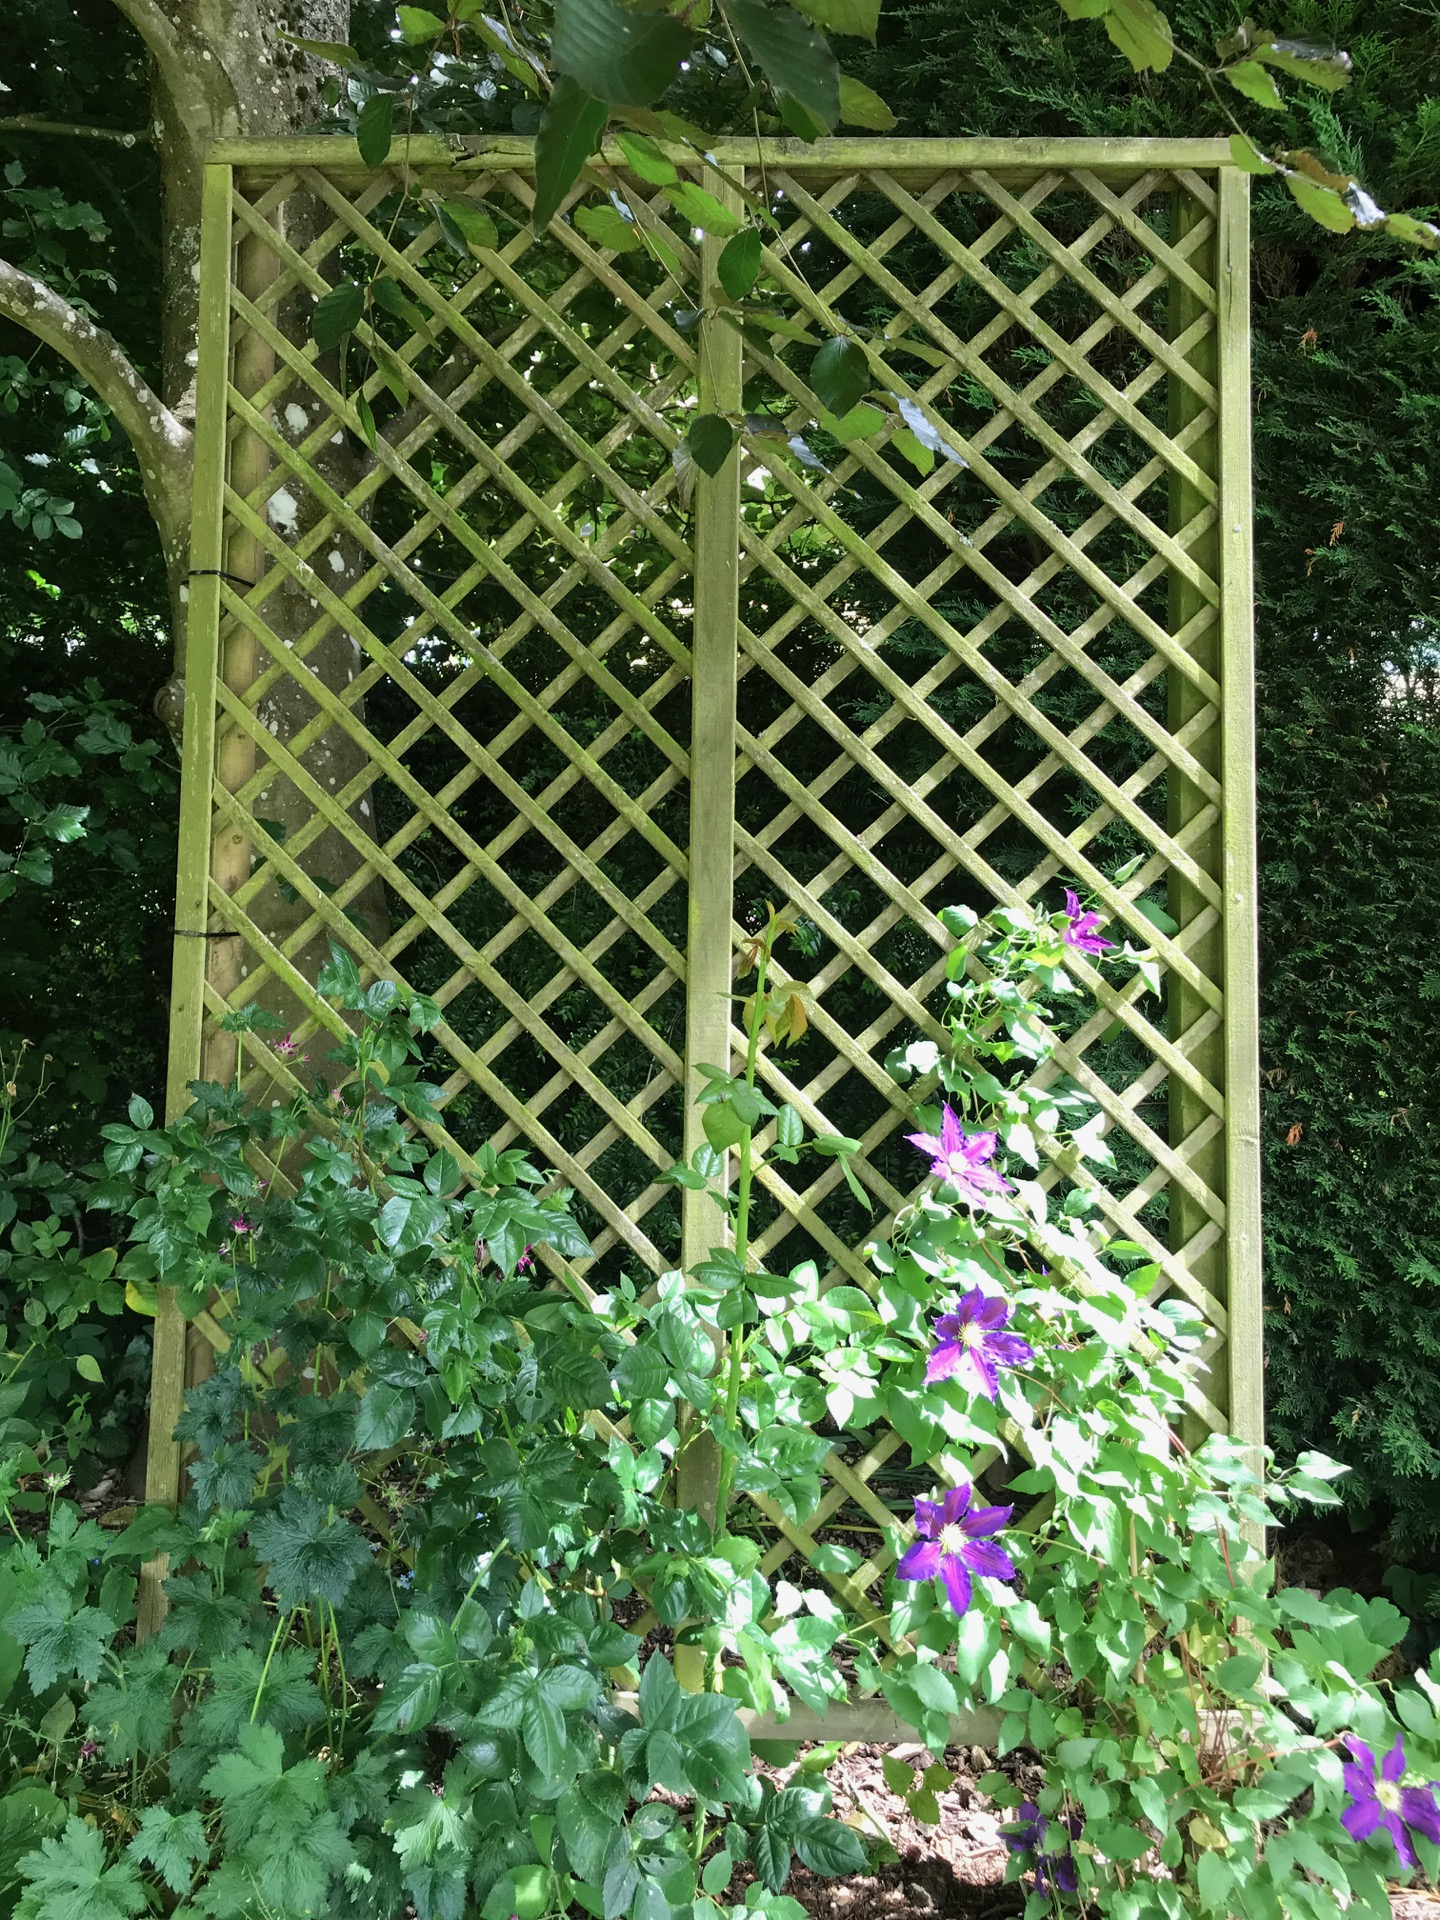 Trellis can be used to disguise parts of the garden.